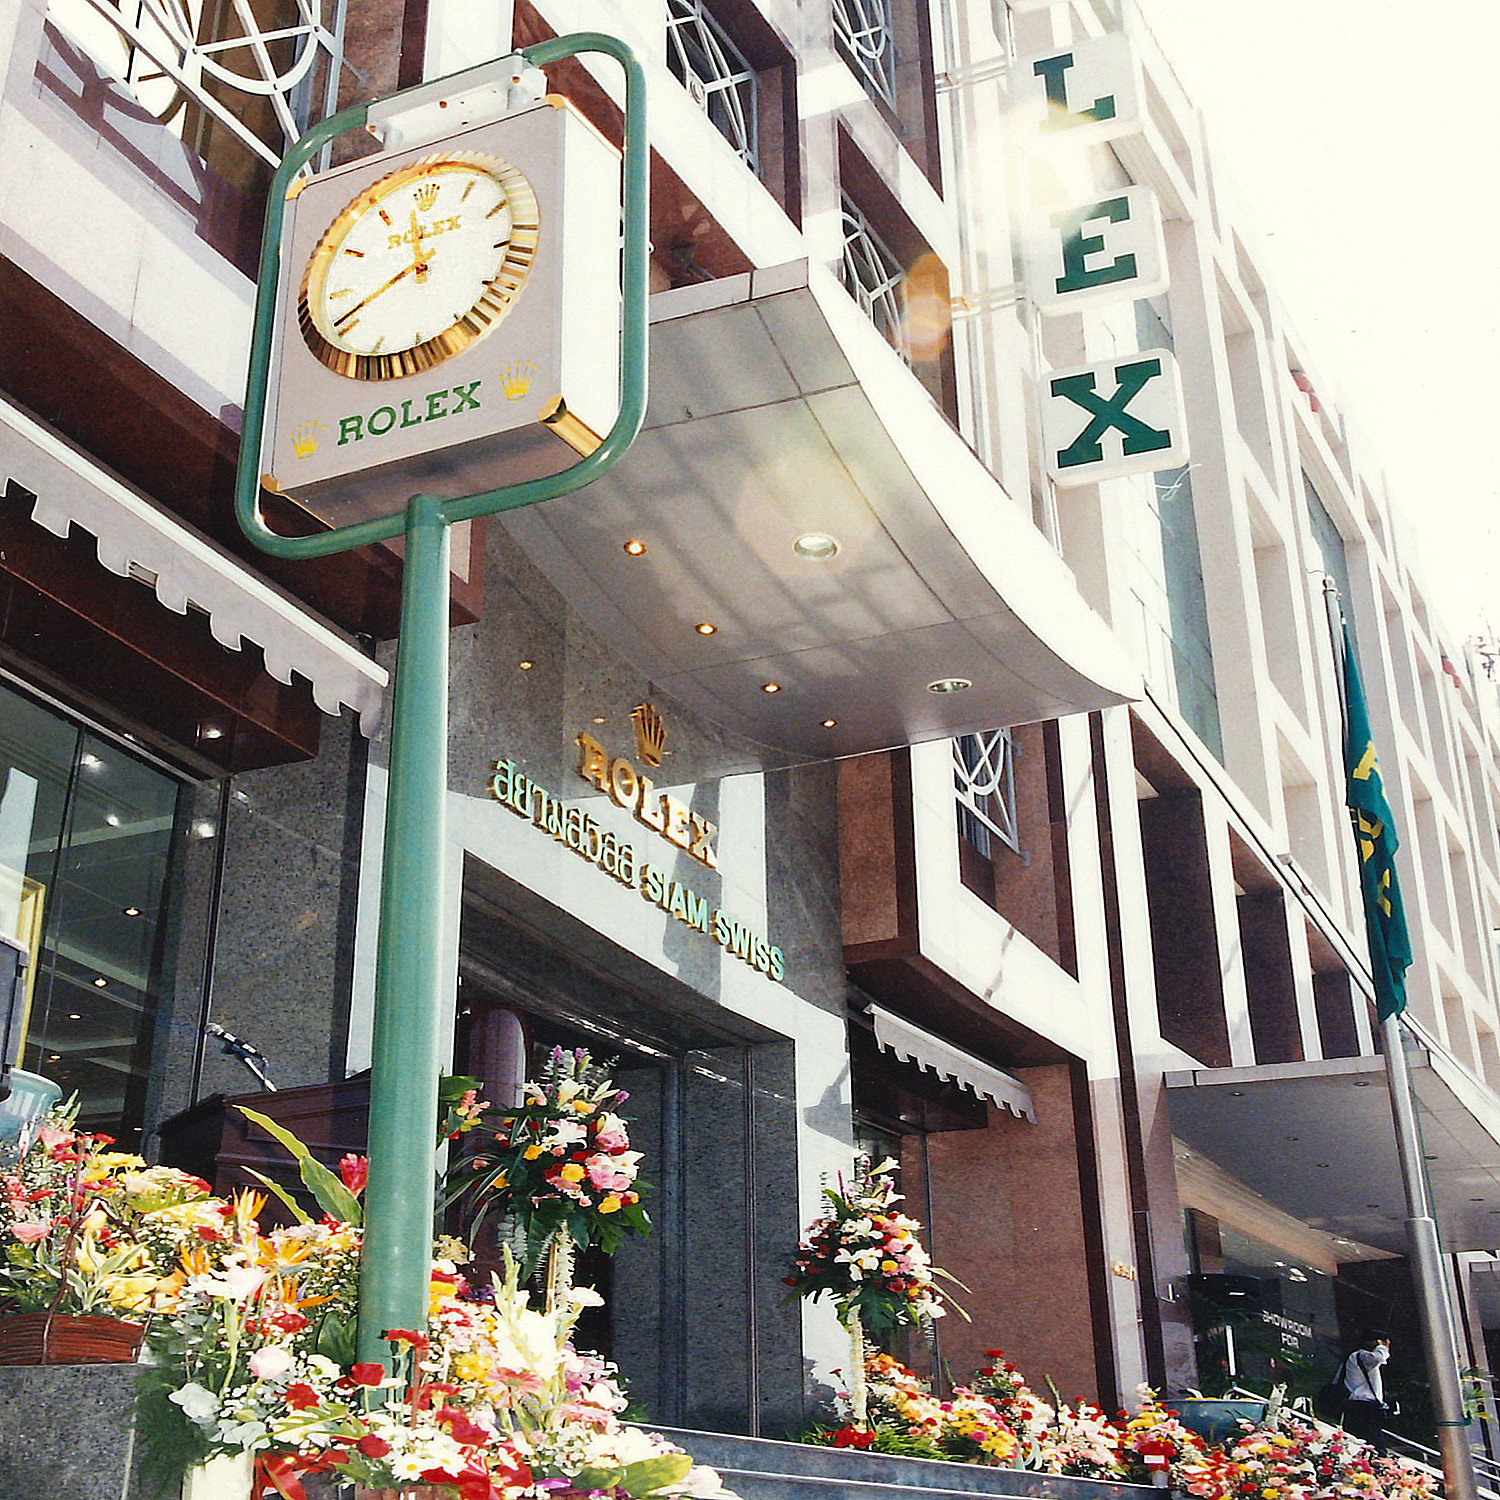 Siam Swiss Silom Rolex Boutique Building with Rolex clock tower